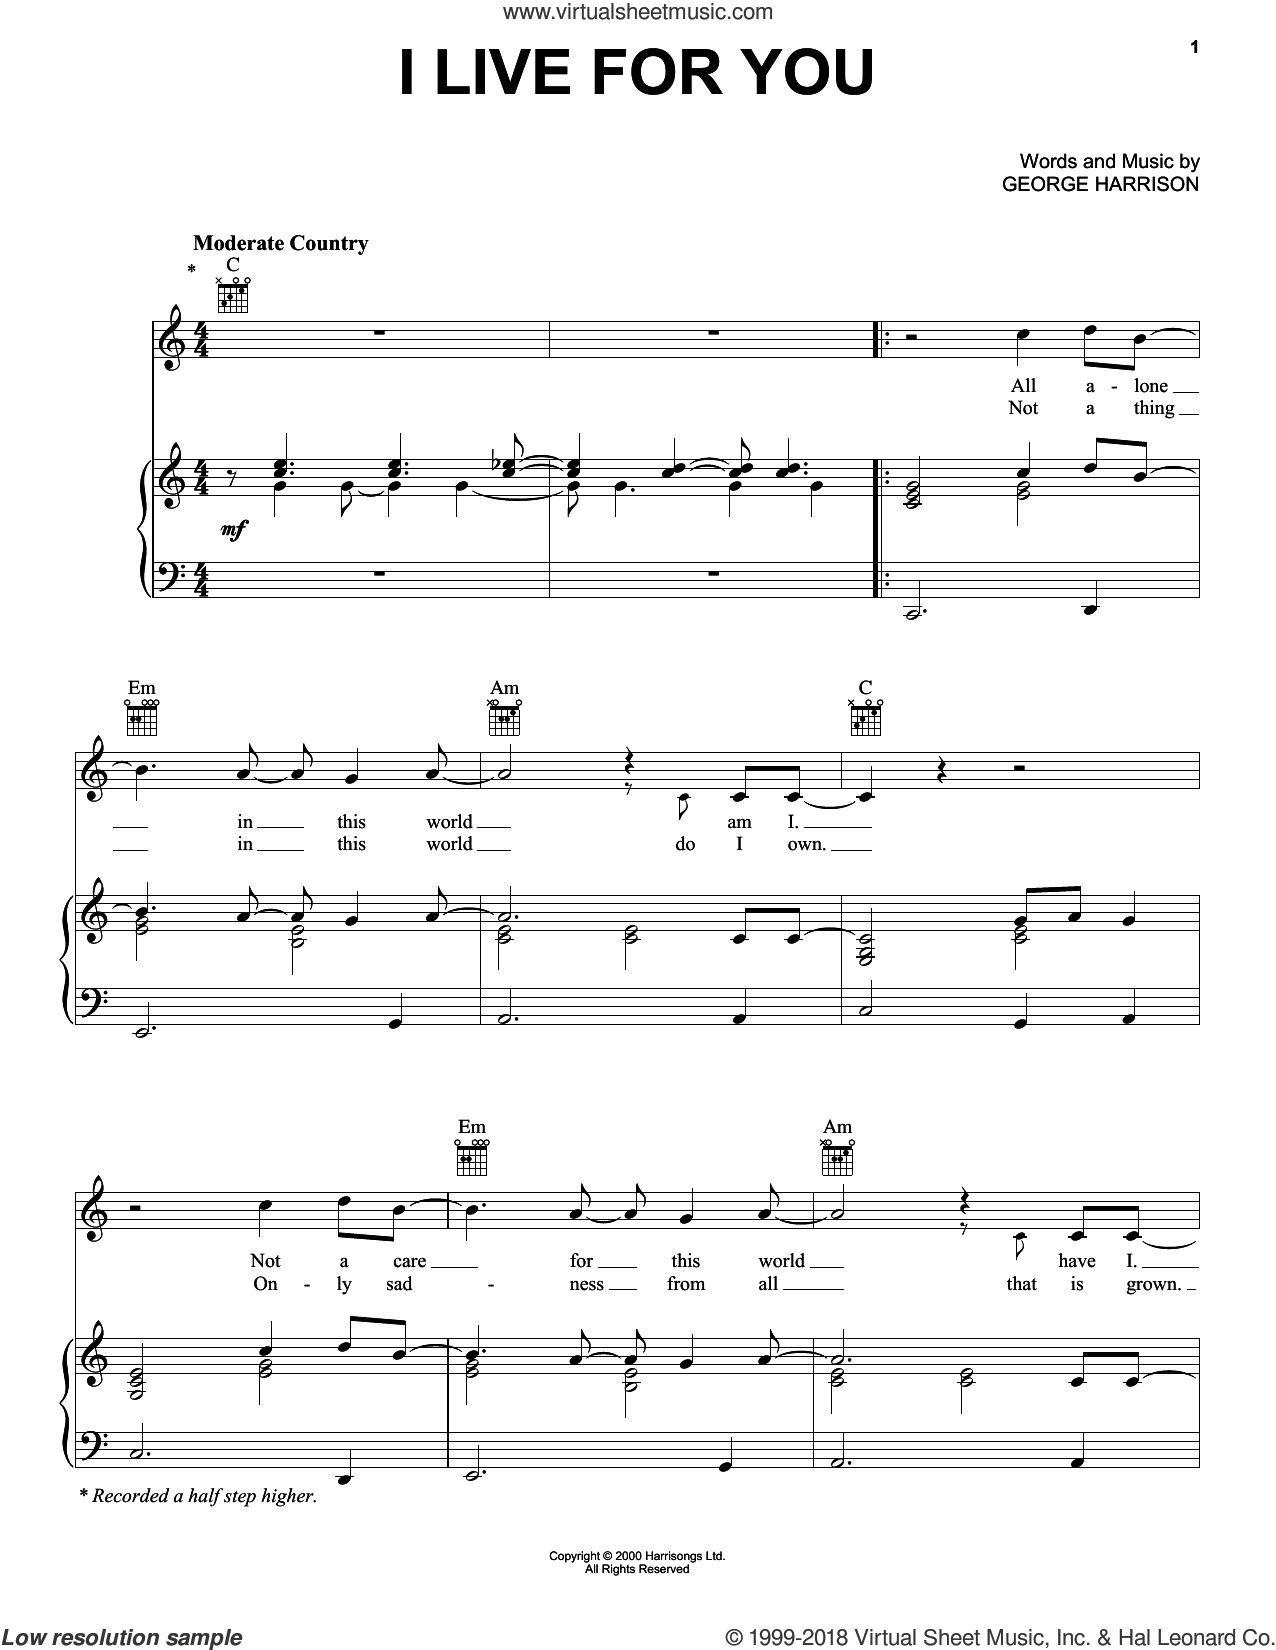 I Live For You sheet music for voice, piano or guitar by George Harrison. Score Image Preview.